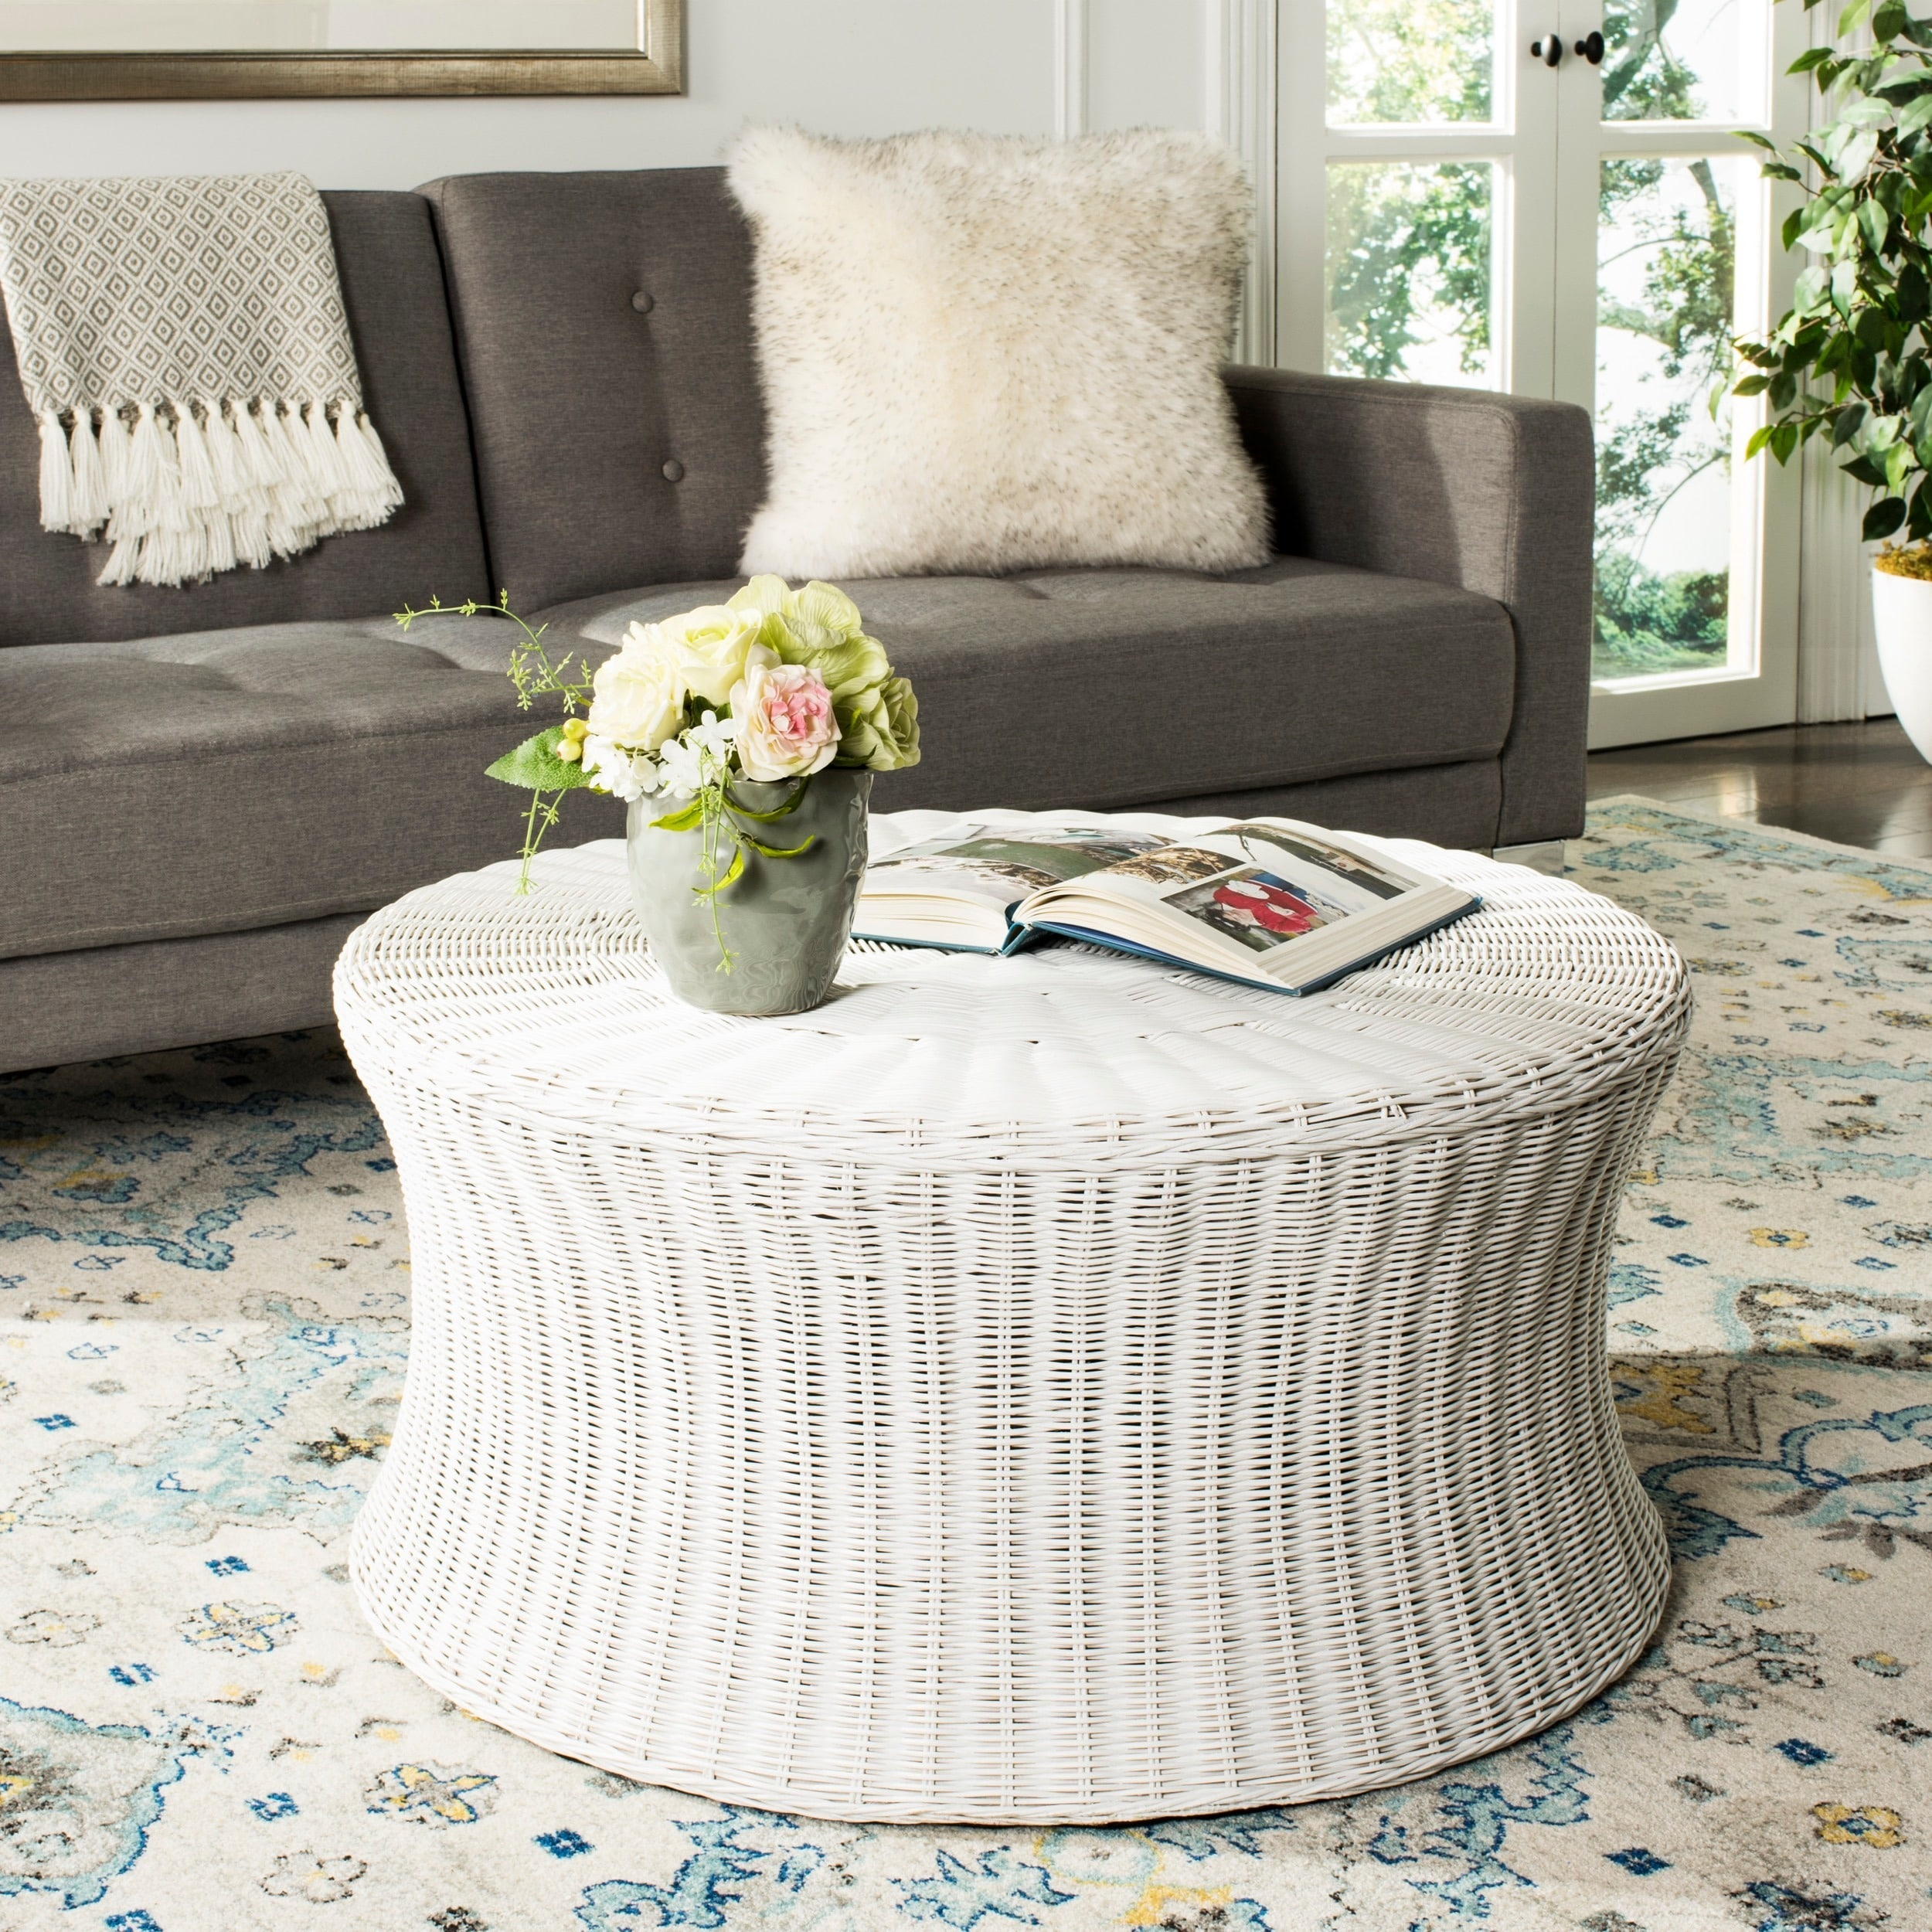 Modern Indoor White Round Wicker Coffee Table Ottoman Tray For ...